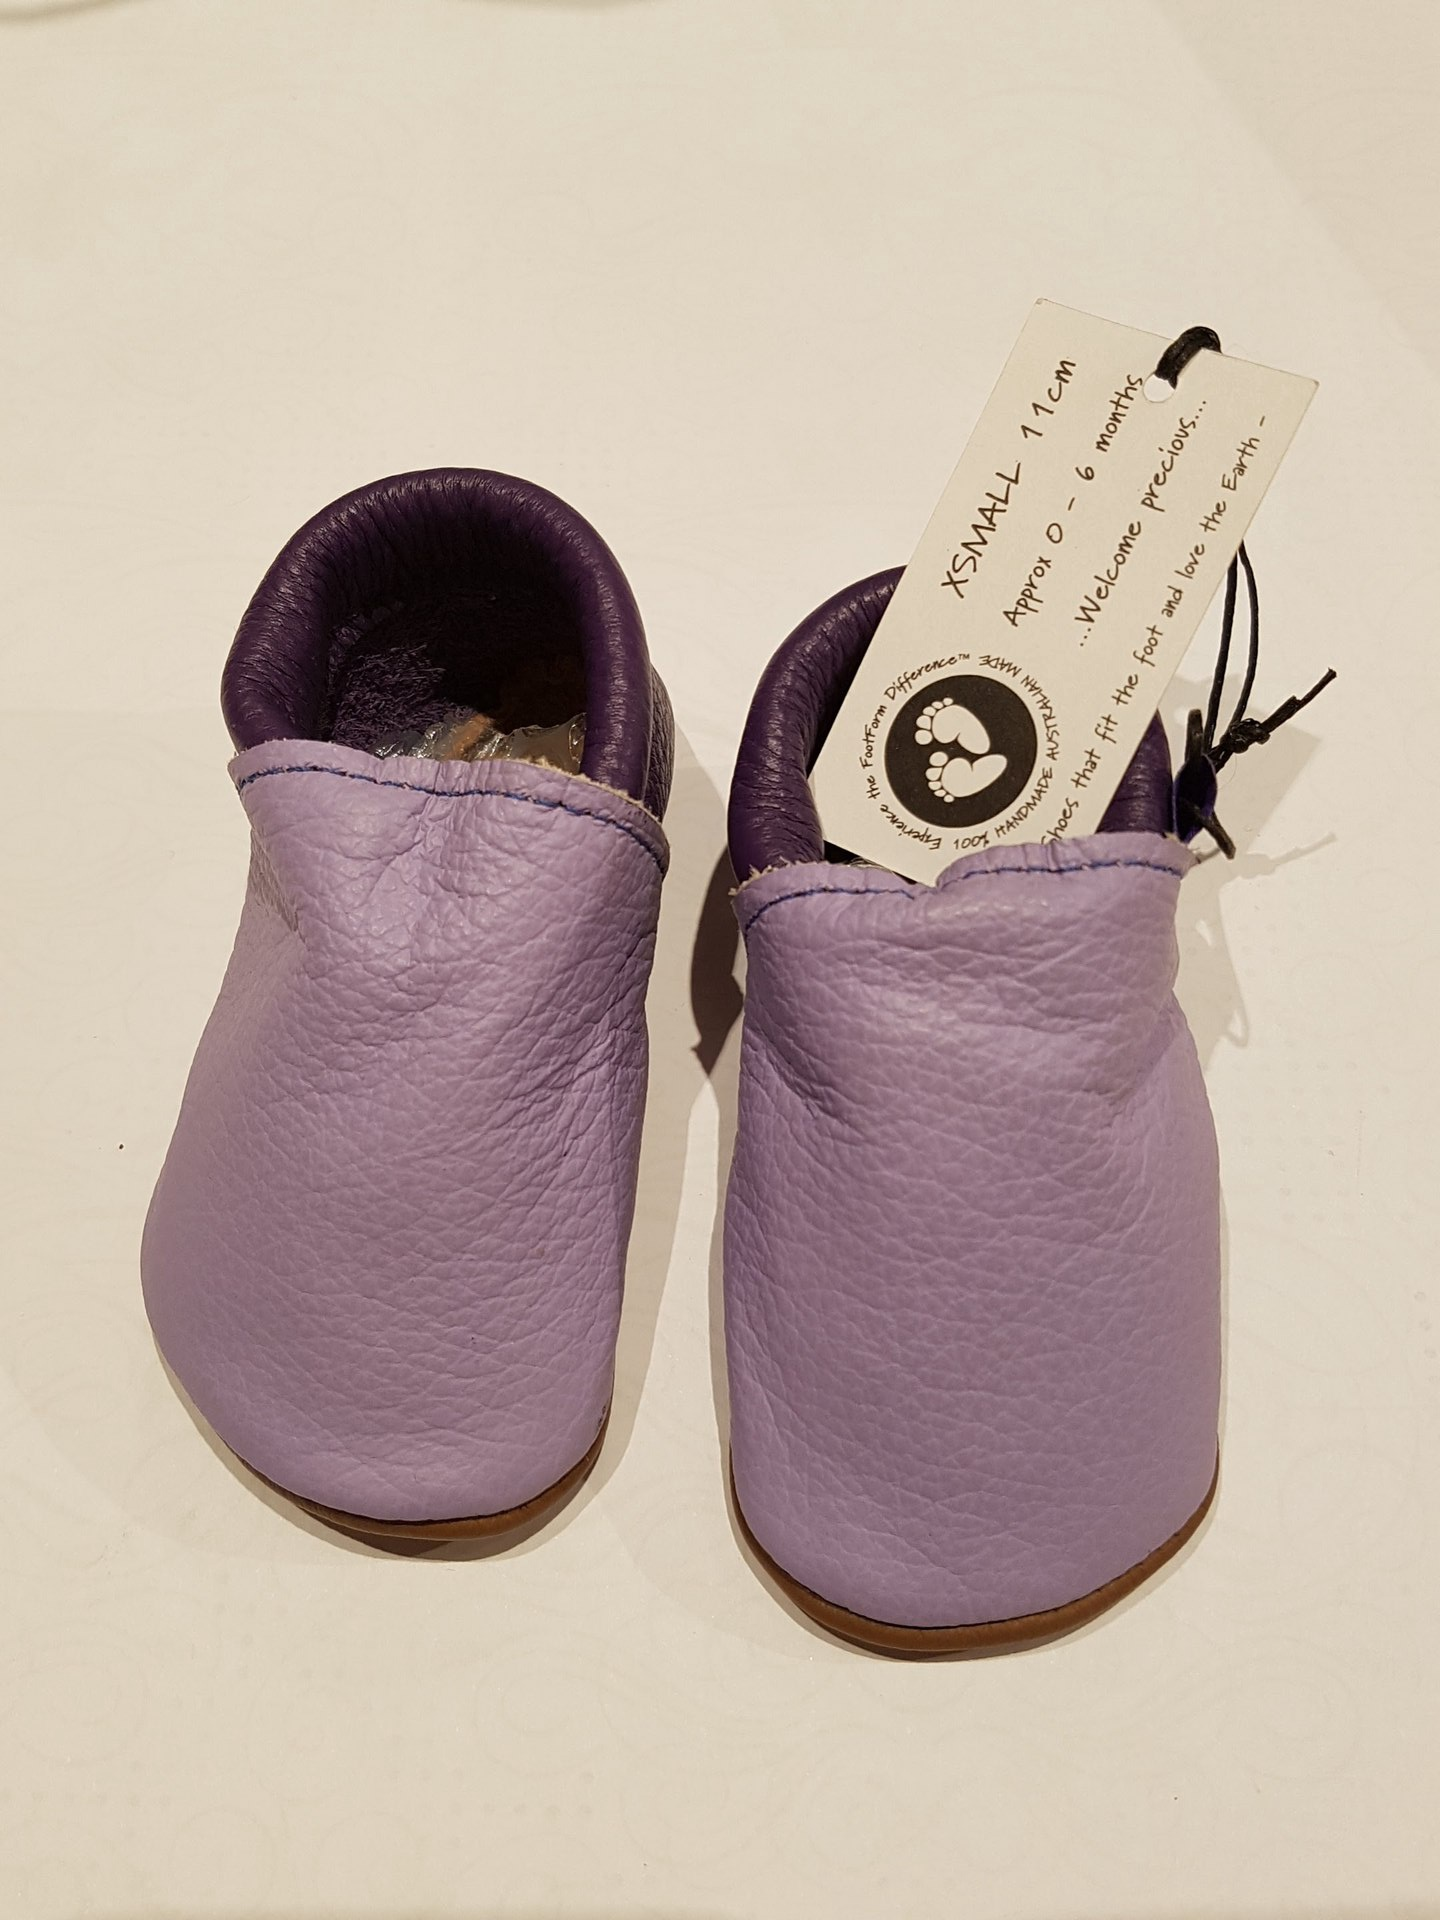 Two Tone purple Moccasins - fit approx 0 - 6 months